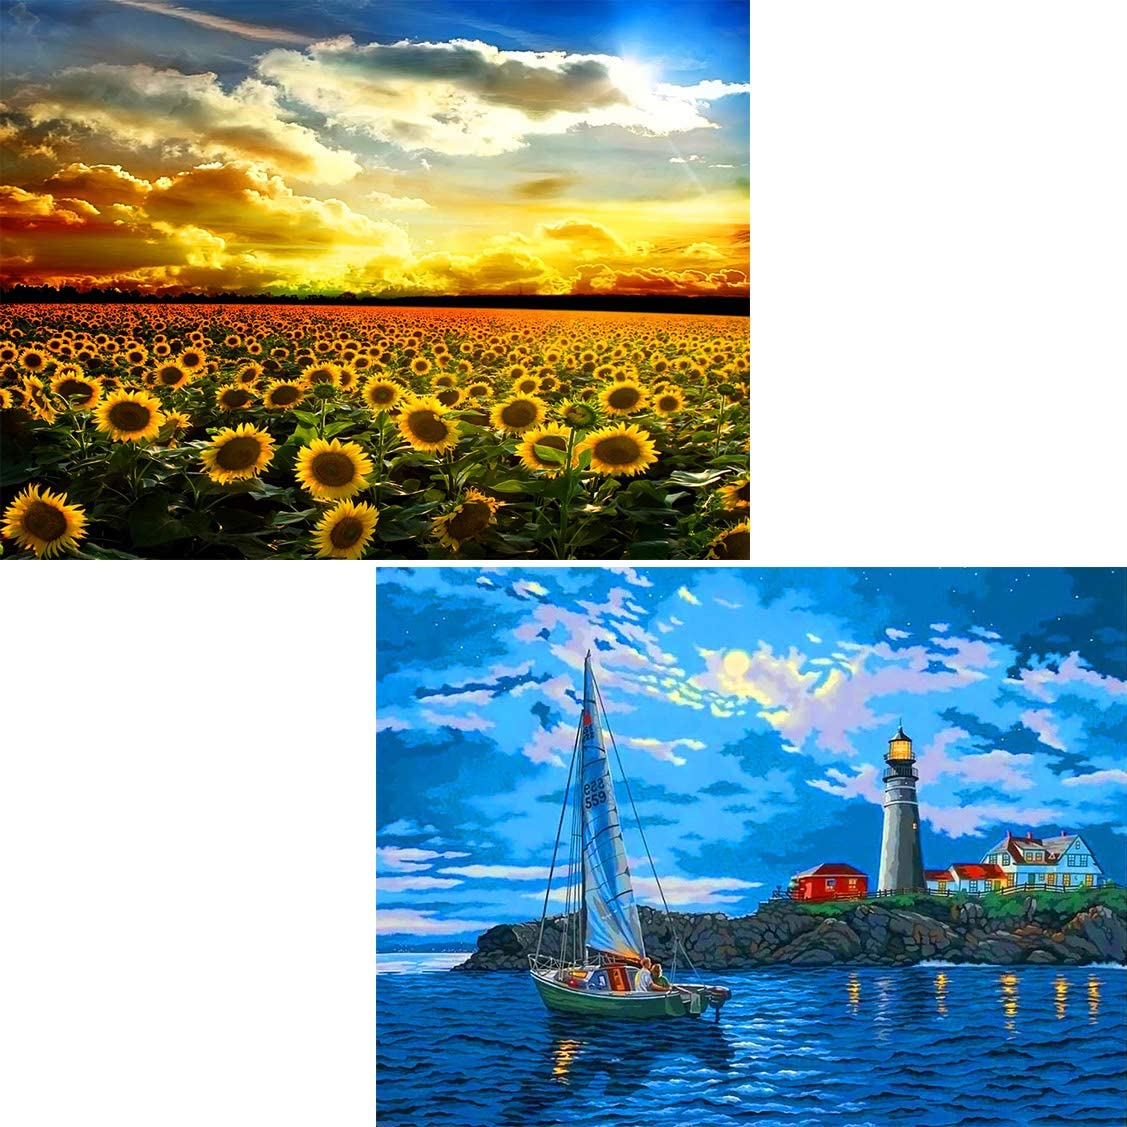 GIEAAO 2 Pack 5D Diamond Painting Kit DIY Sunflower Sailboat Lighthouse Sunset Full Drill Round Rhinestone Craft Canvas for Home Gift Wall Decor 12x16 inch